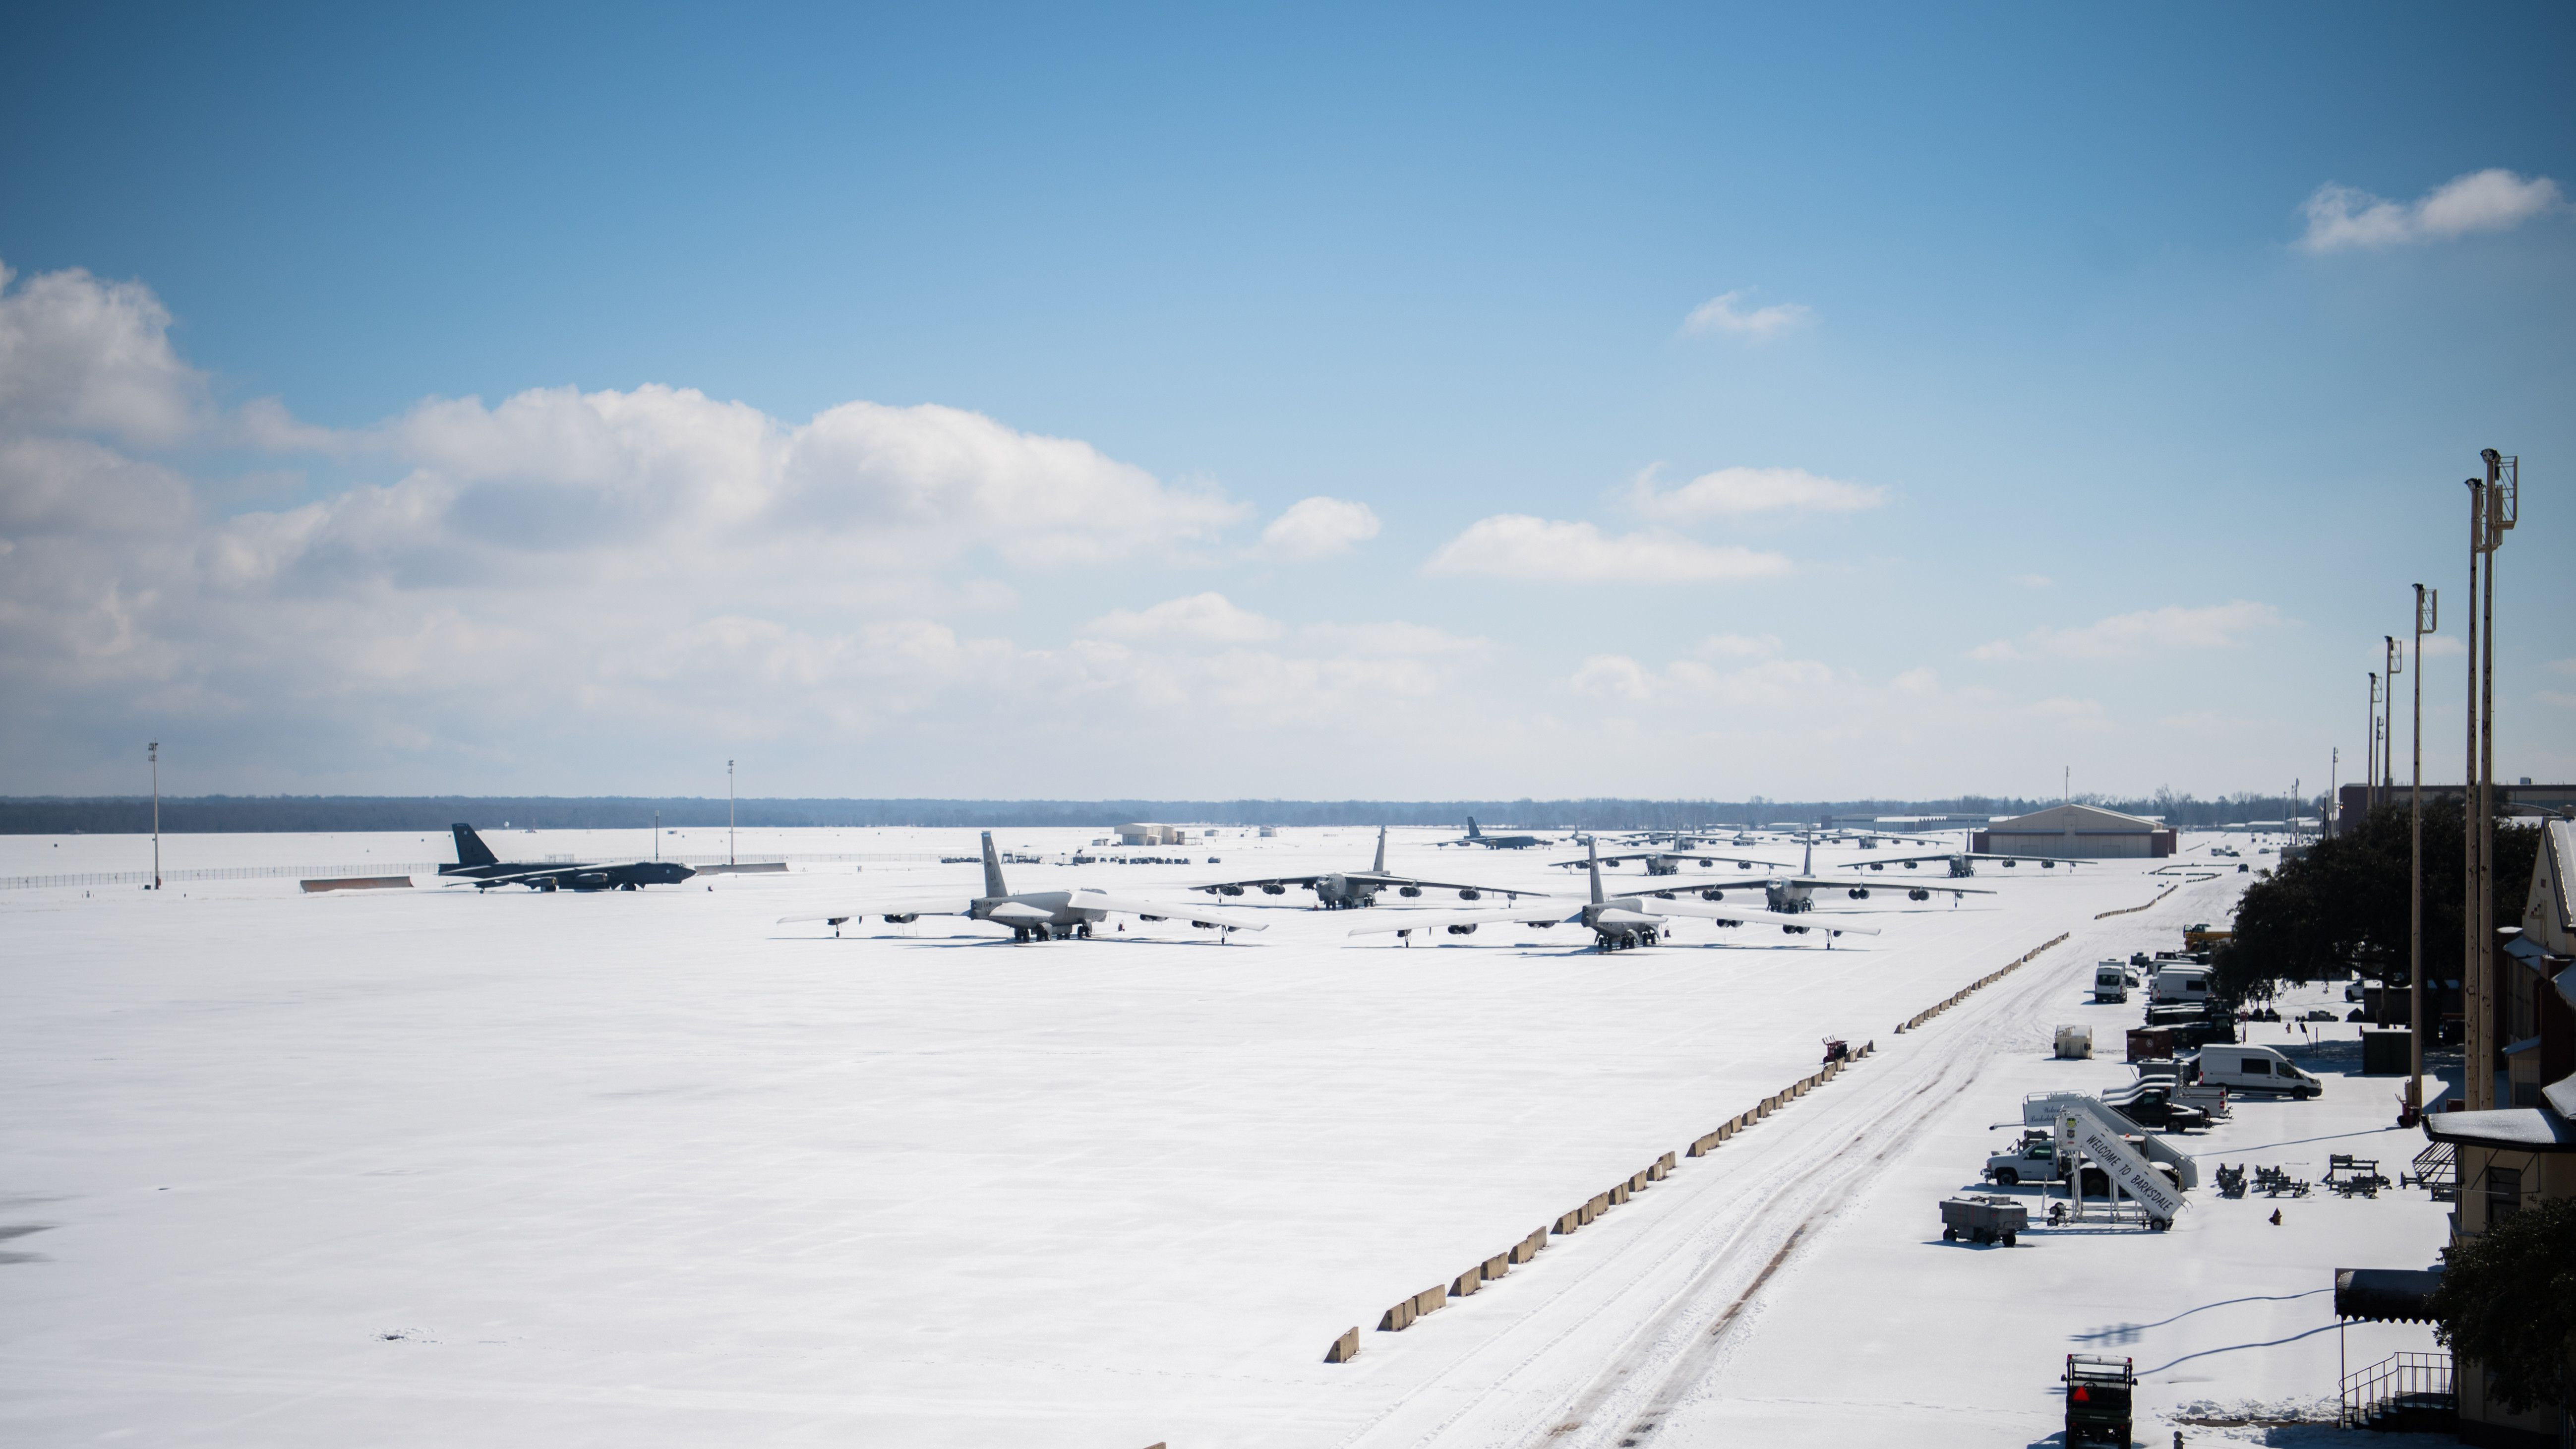 Air Force faces $72 million bill for winter storm damage